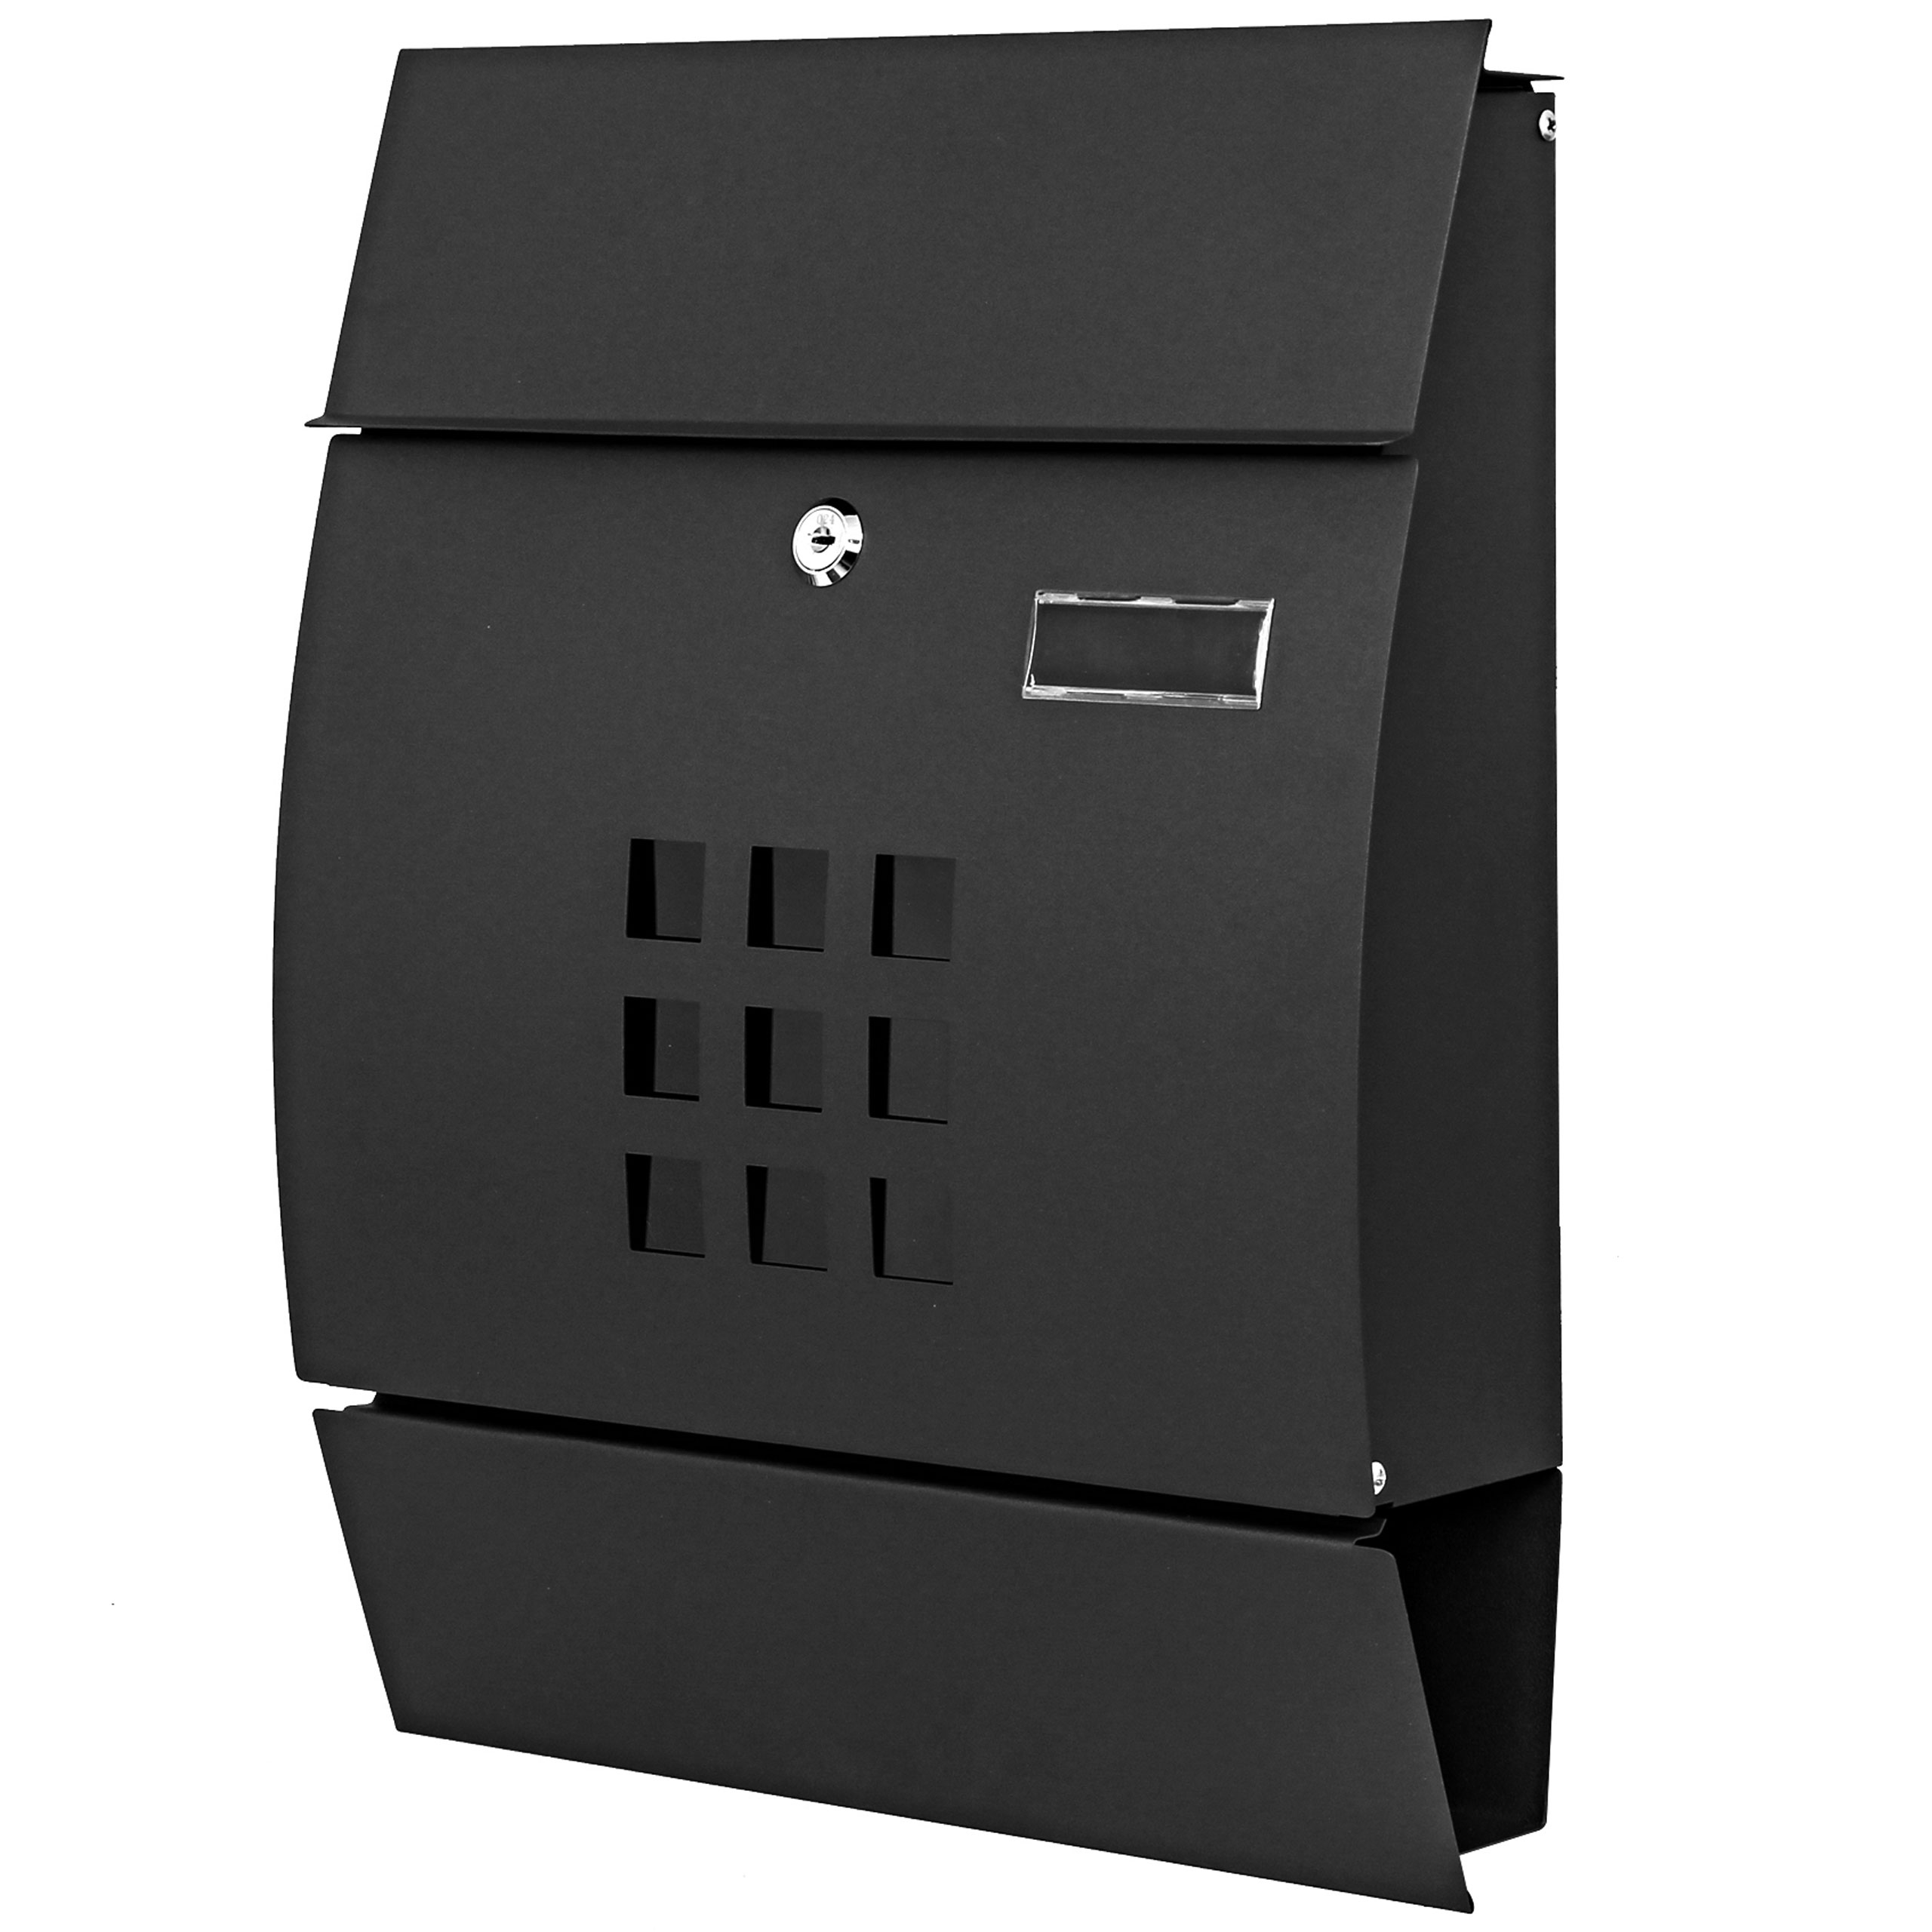 briefkasten hwc b32 wandbriefkasten postkasten. Black Bedroom Furniture Sets. Home Design Ideas